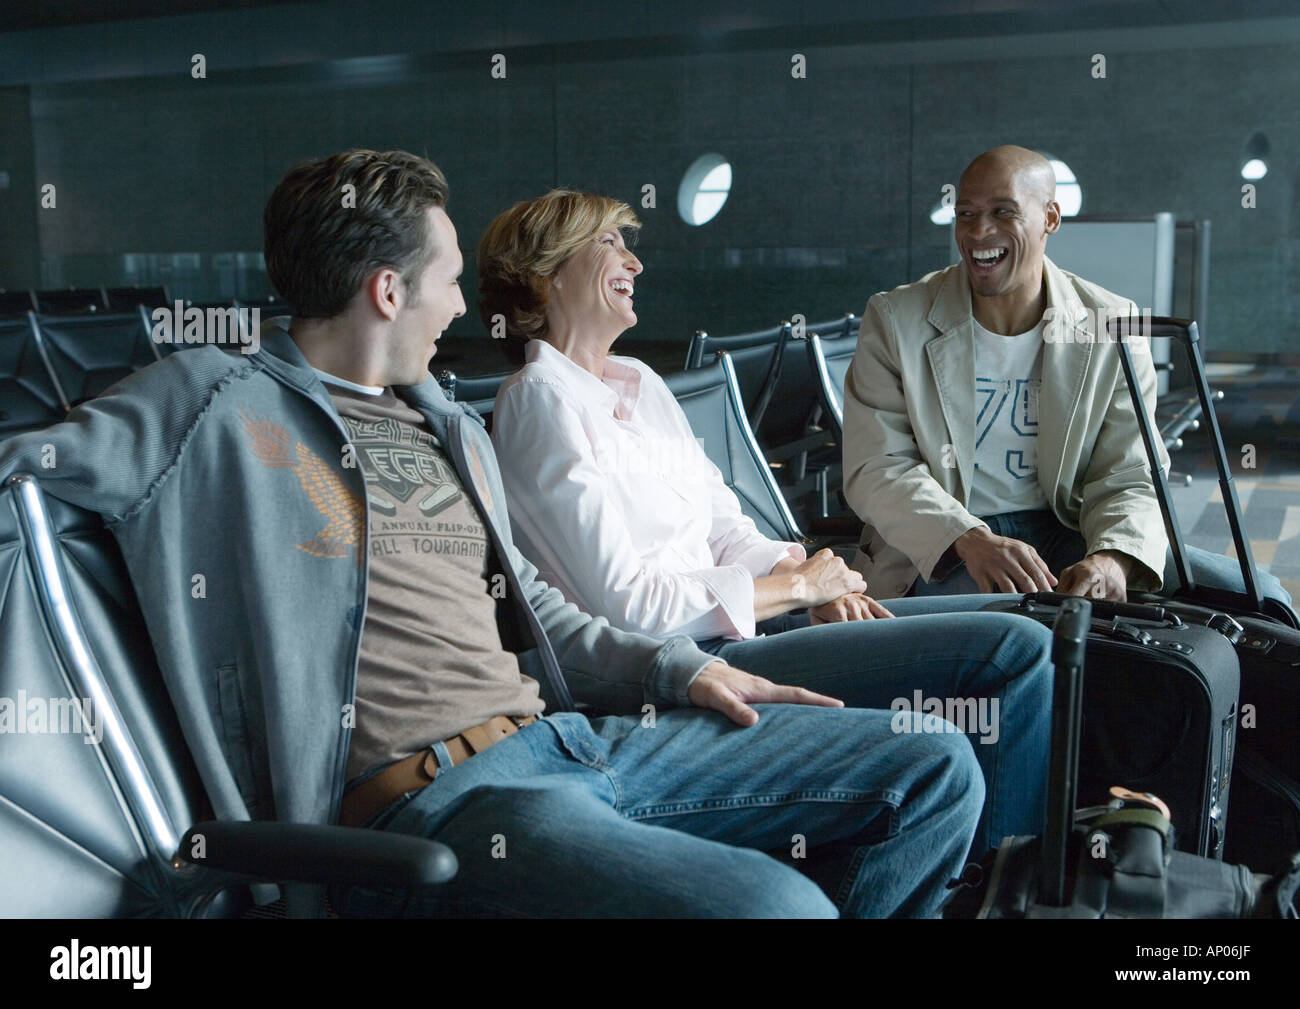 Travelers chatting in airport lounge - Stock Image